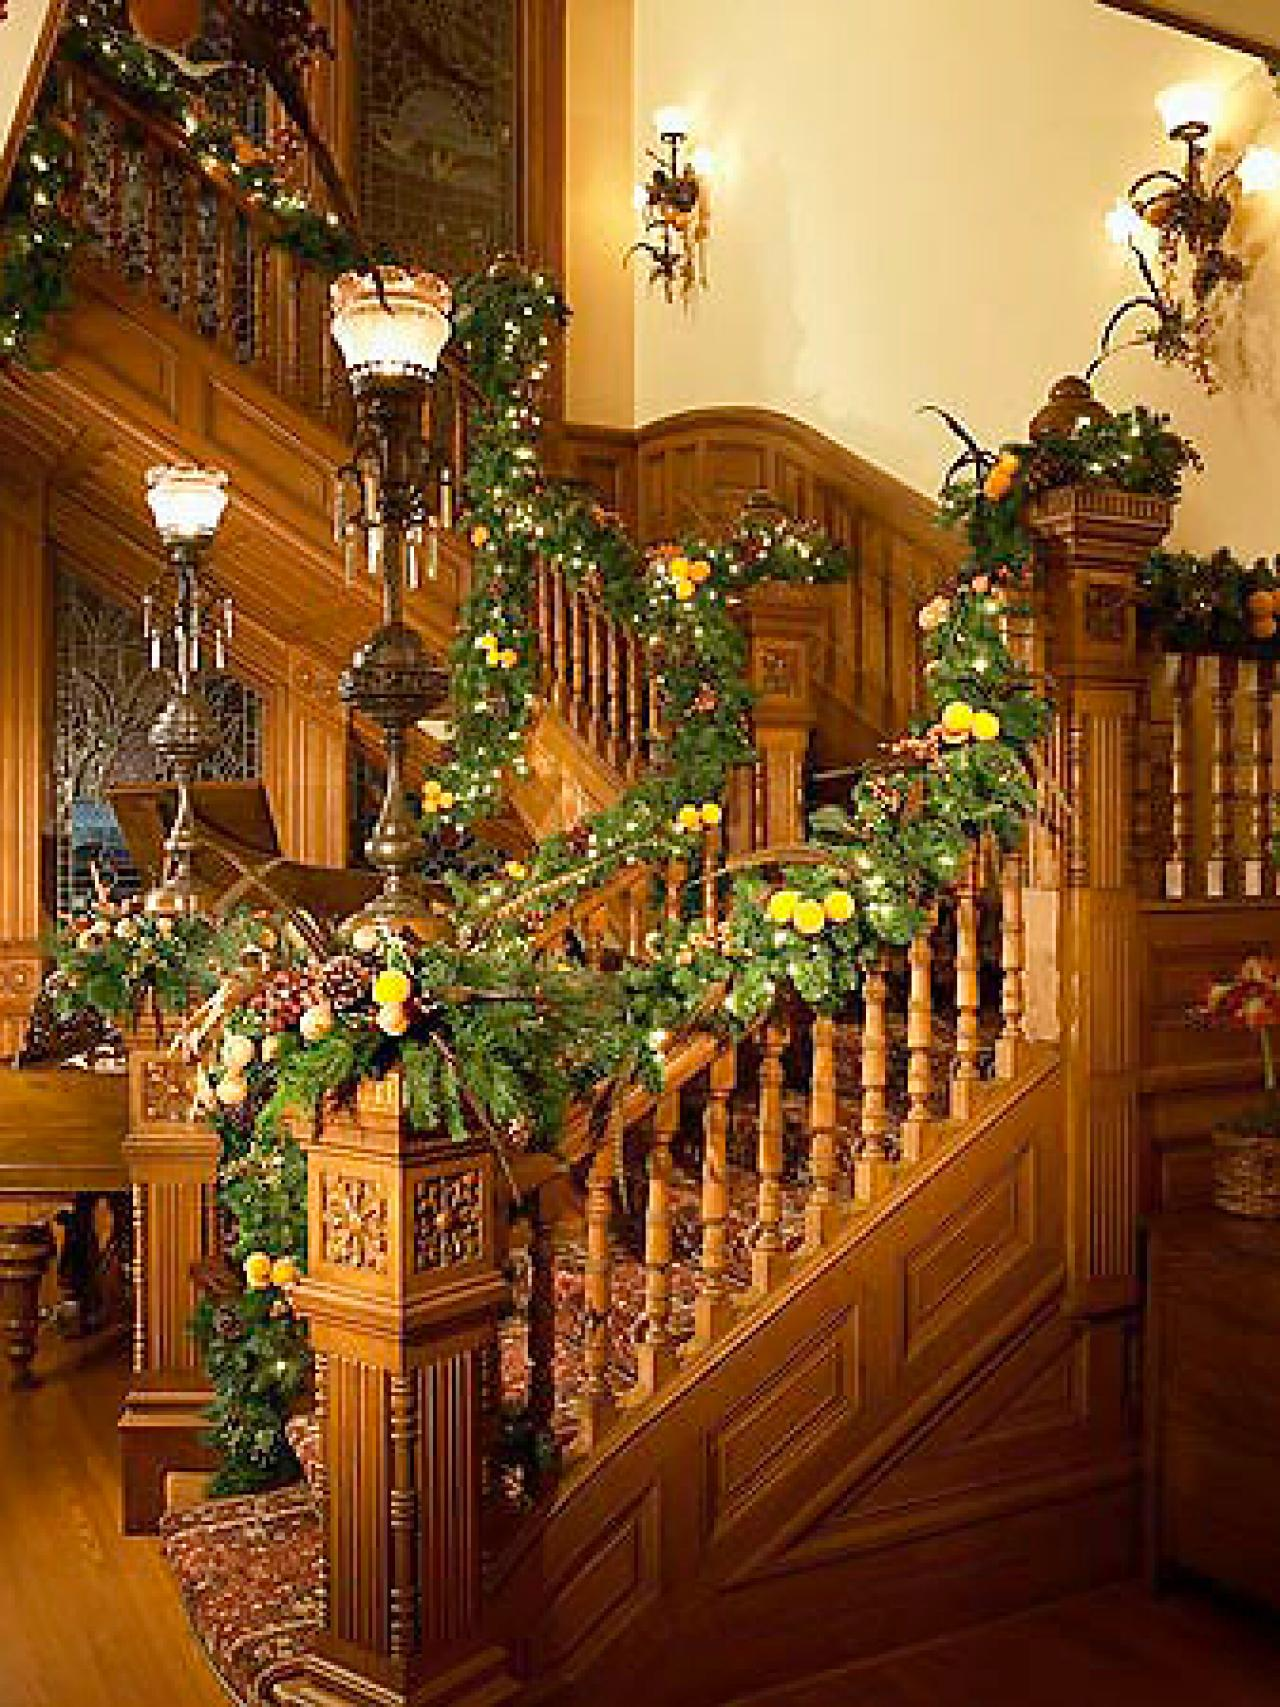 Indoor christmas decorations interior design styles and for Christmas decorations ideas to make at home